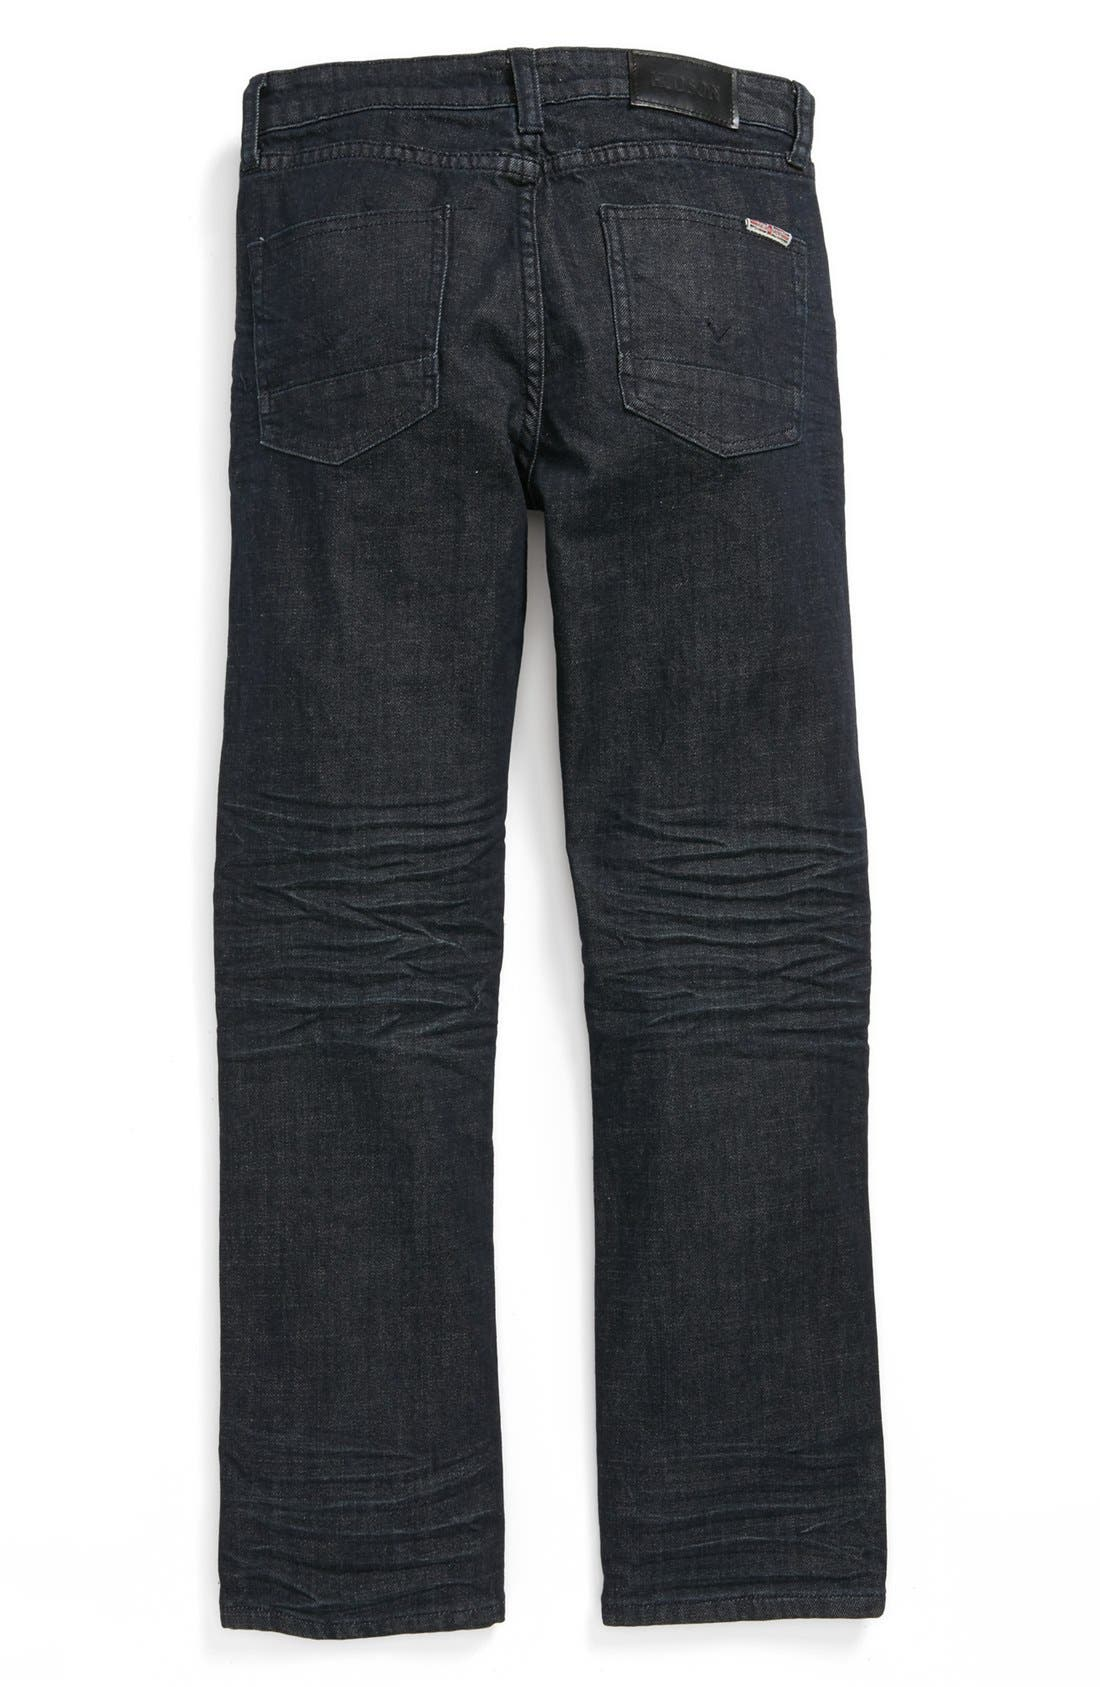 Alternate Image 1 Selected - Hudson Kids 'Parker' Straight Leg Jeans (Little Boys & Big Boys)